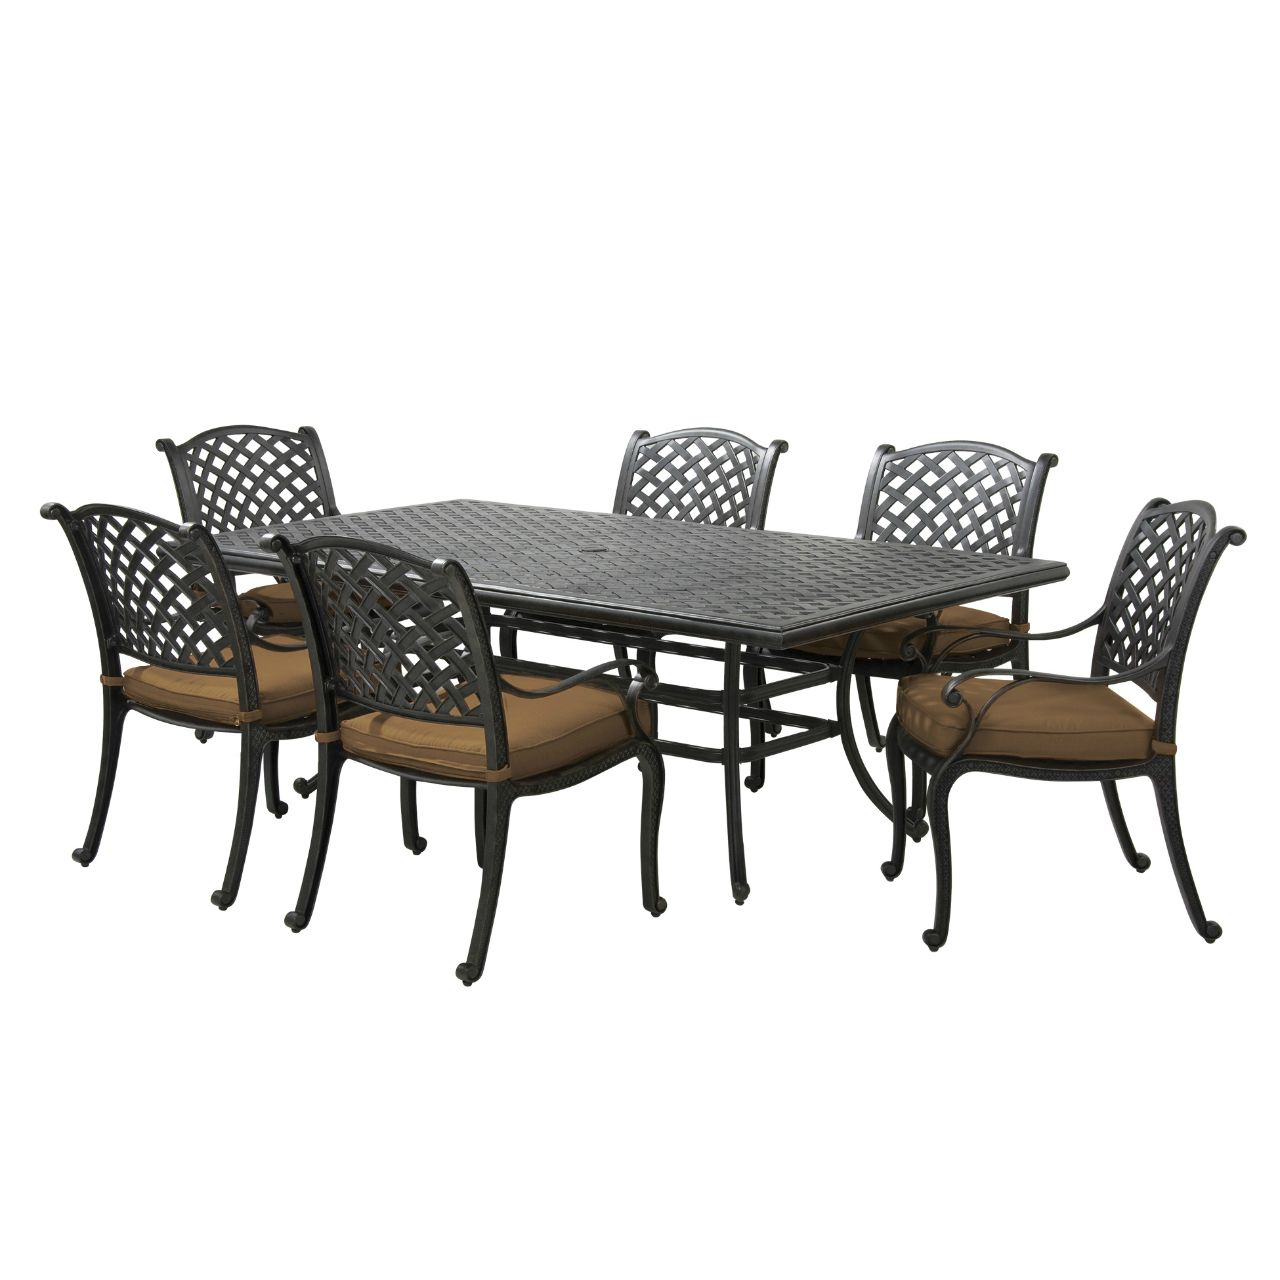 Patio Furniture Abq Nm: Taos 7-Piece Dining Set